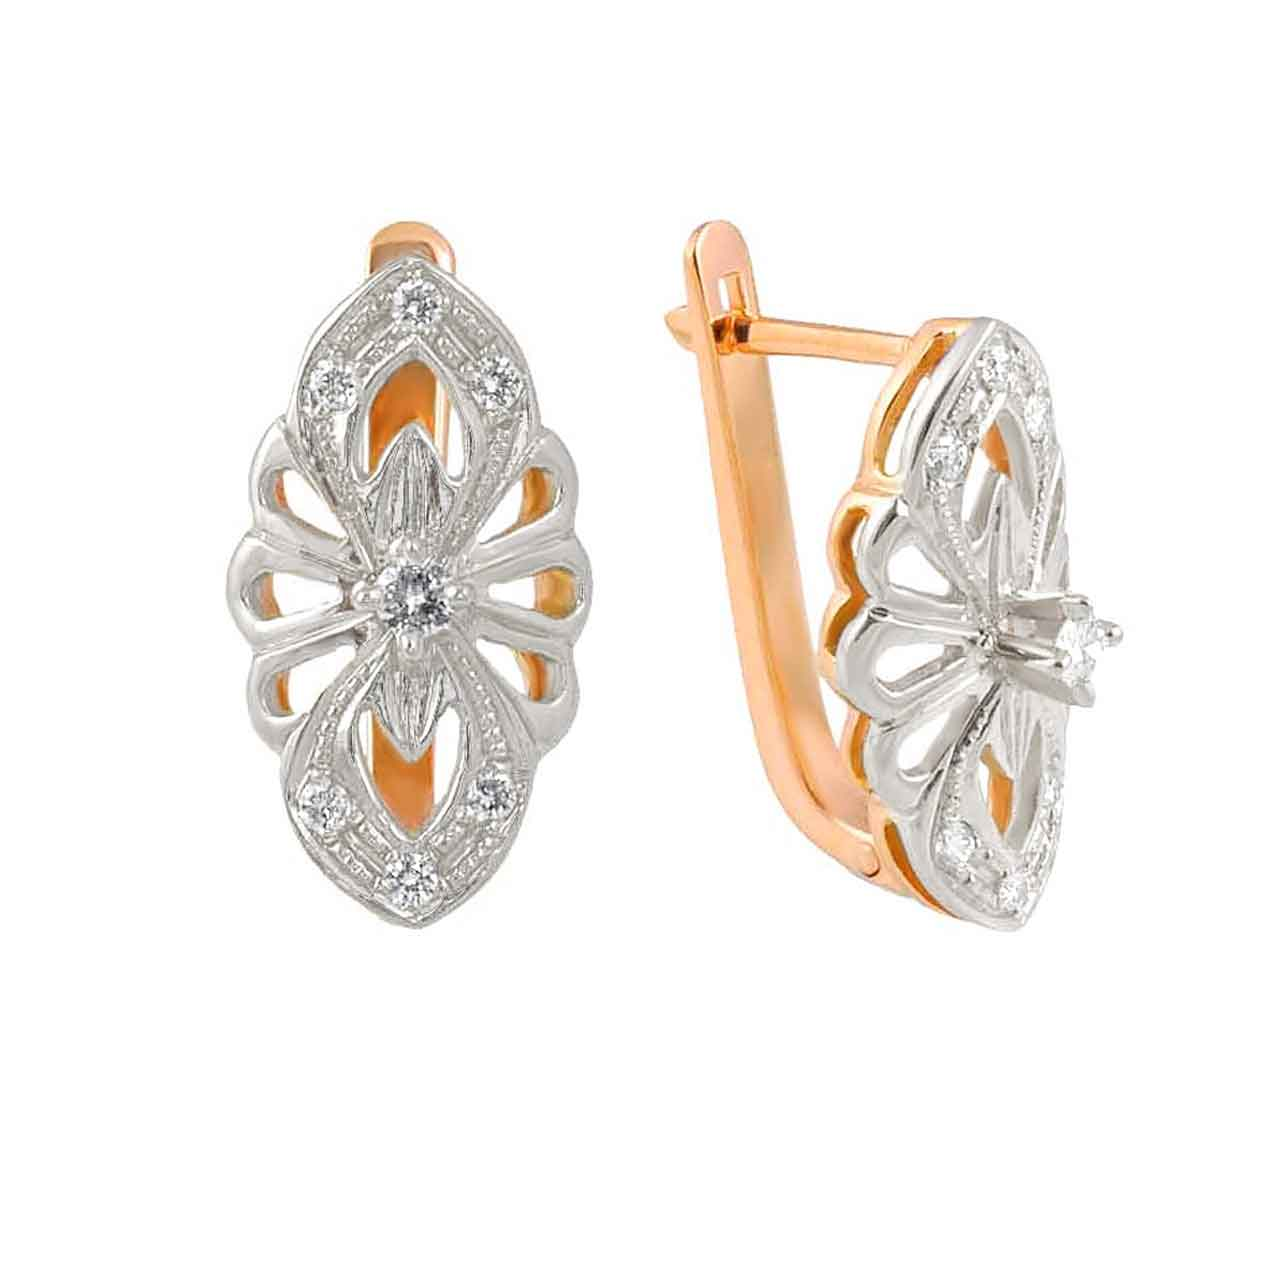 Antique-style Diamond Leverback Earrings